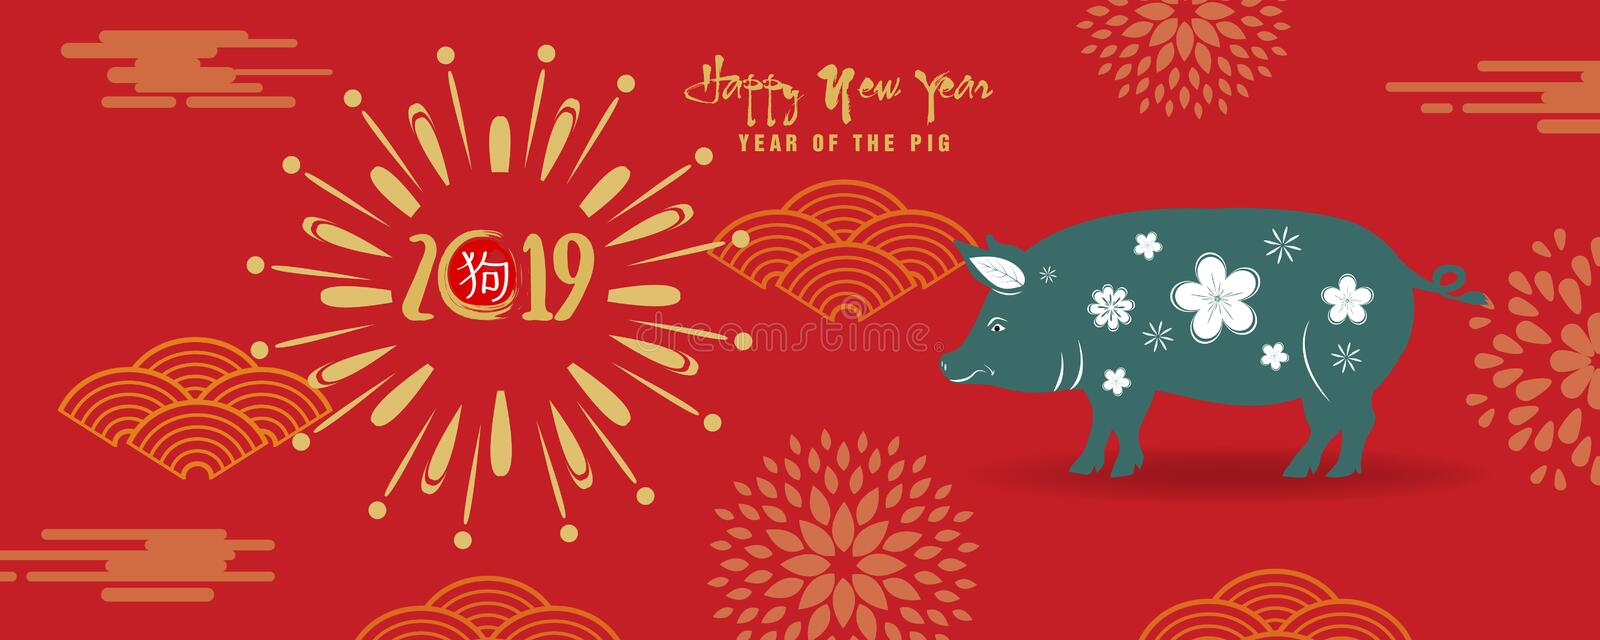 Banner chinese new year 2019 invitation cards. Year of the pig. Chinese characters mean Happy New Year vector illustration